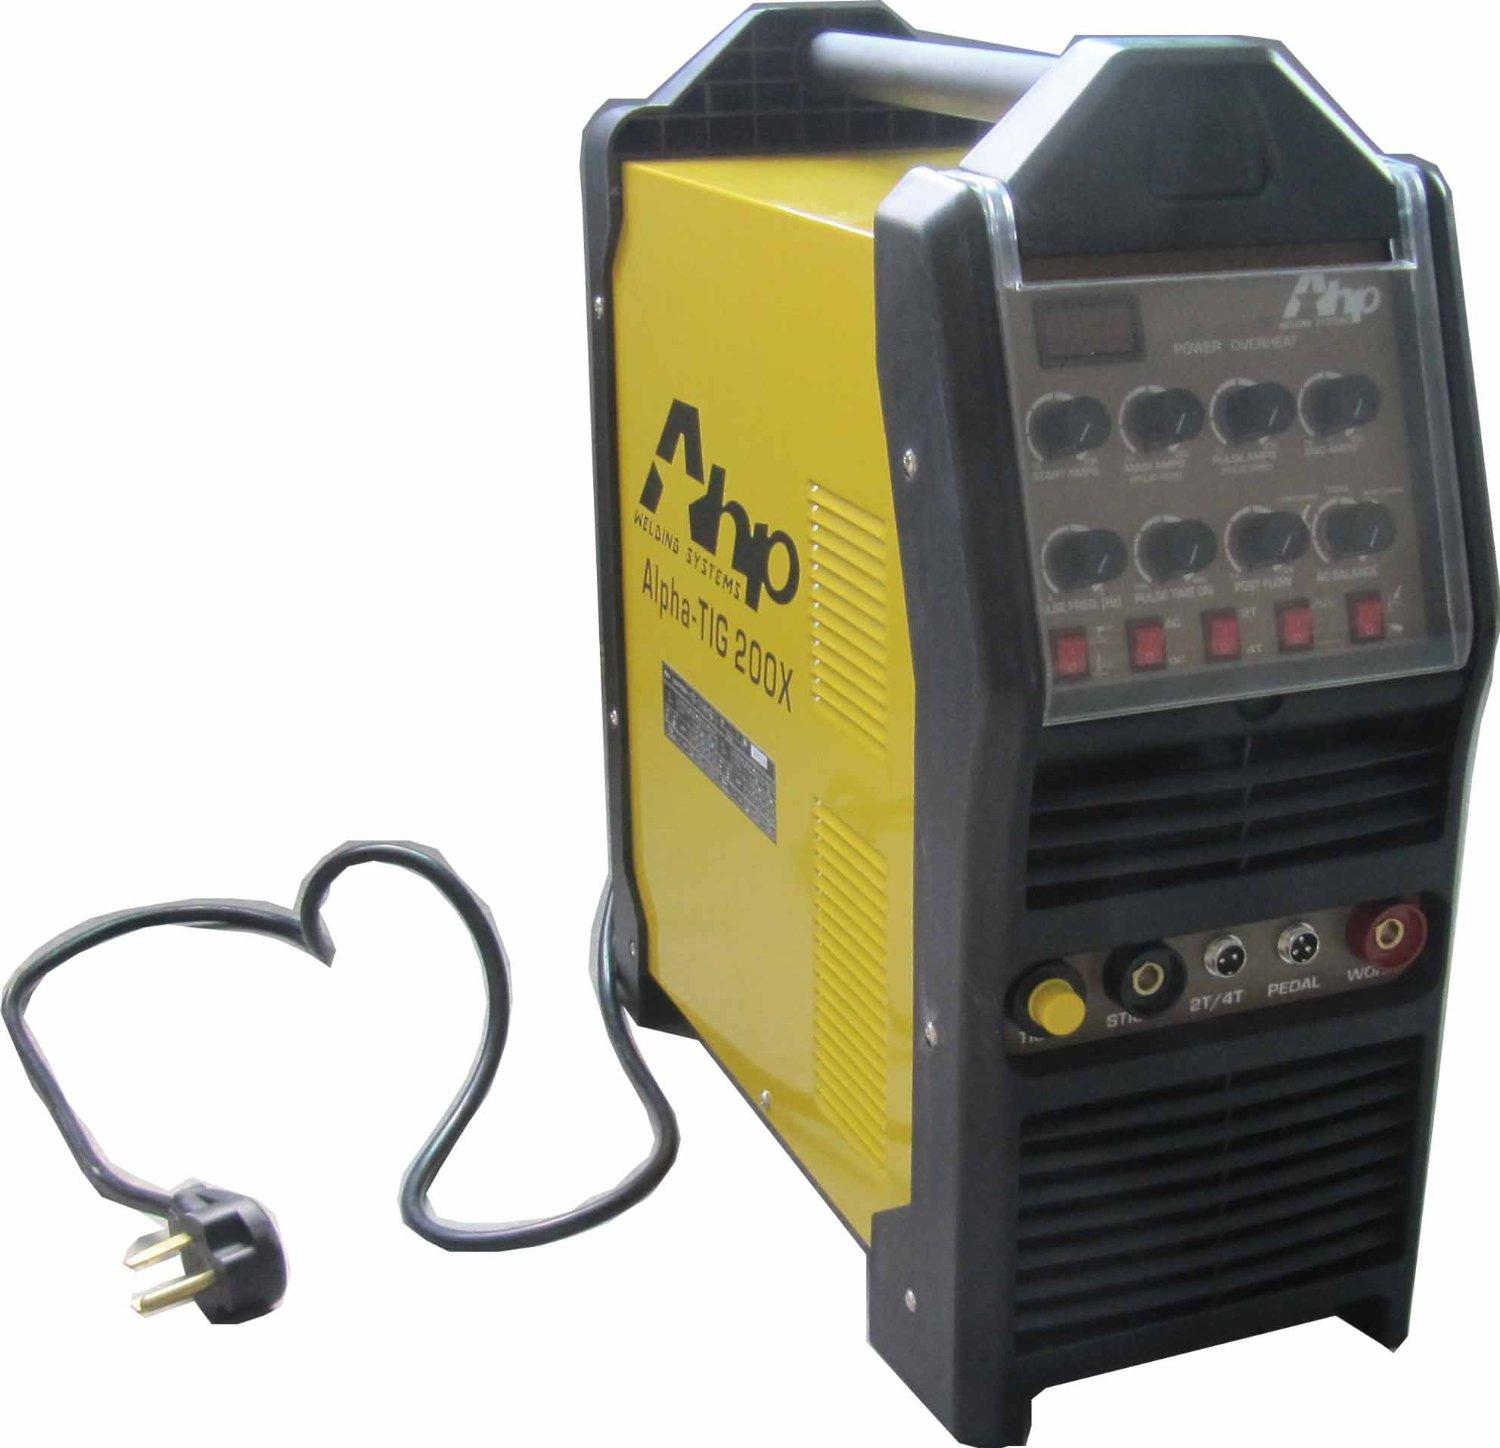 Ahp Alphatig 200x 200 Amp Igbt Ac Dc Tig Stick Welder With Pulse Welding Machine Circuit Board On Diagram 110v And 200v